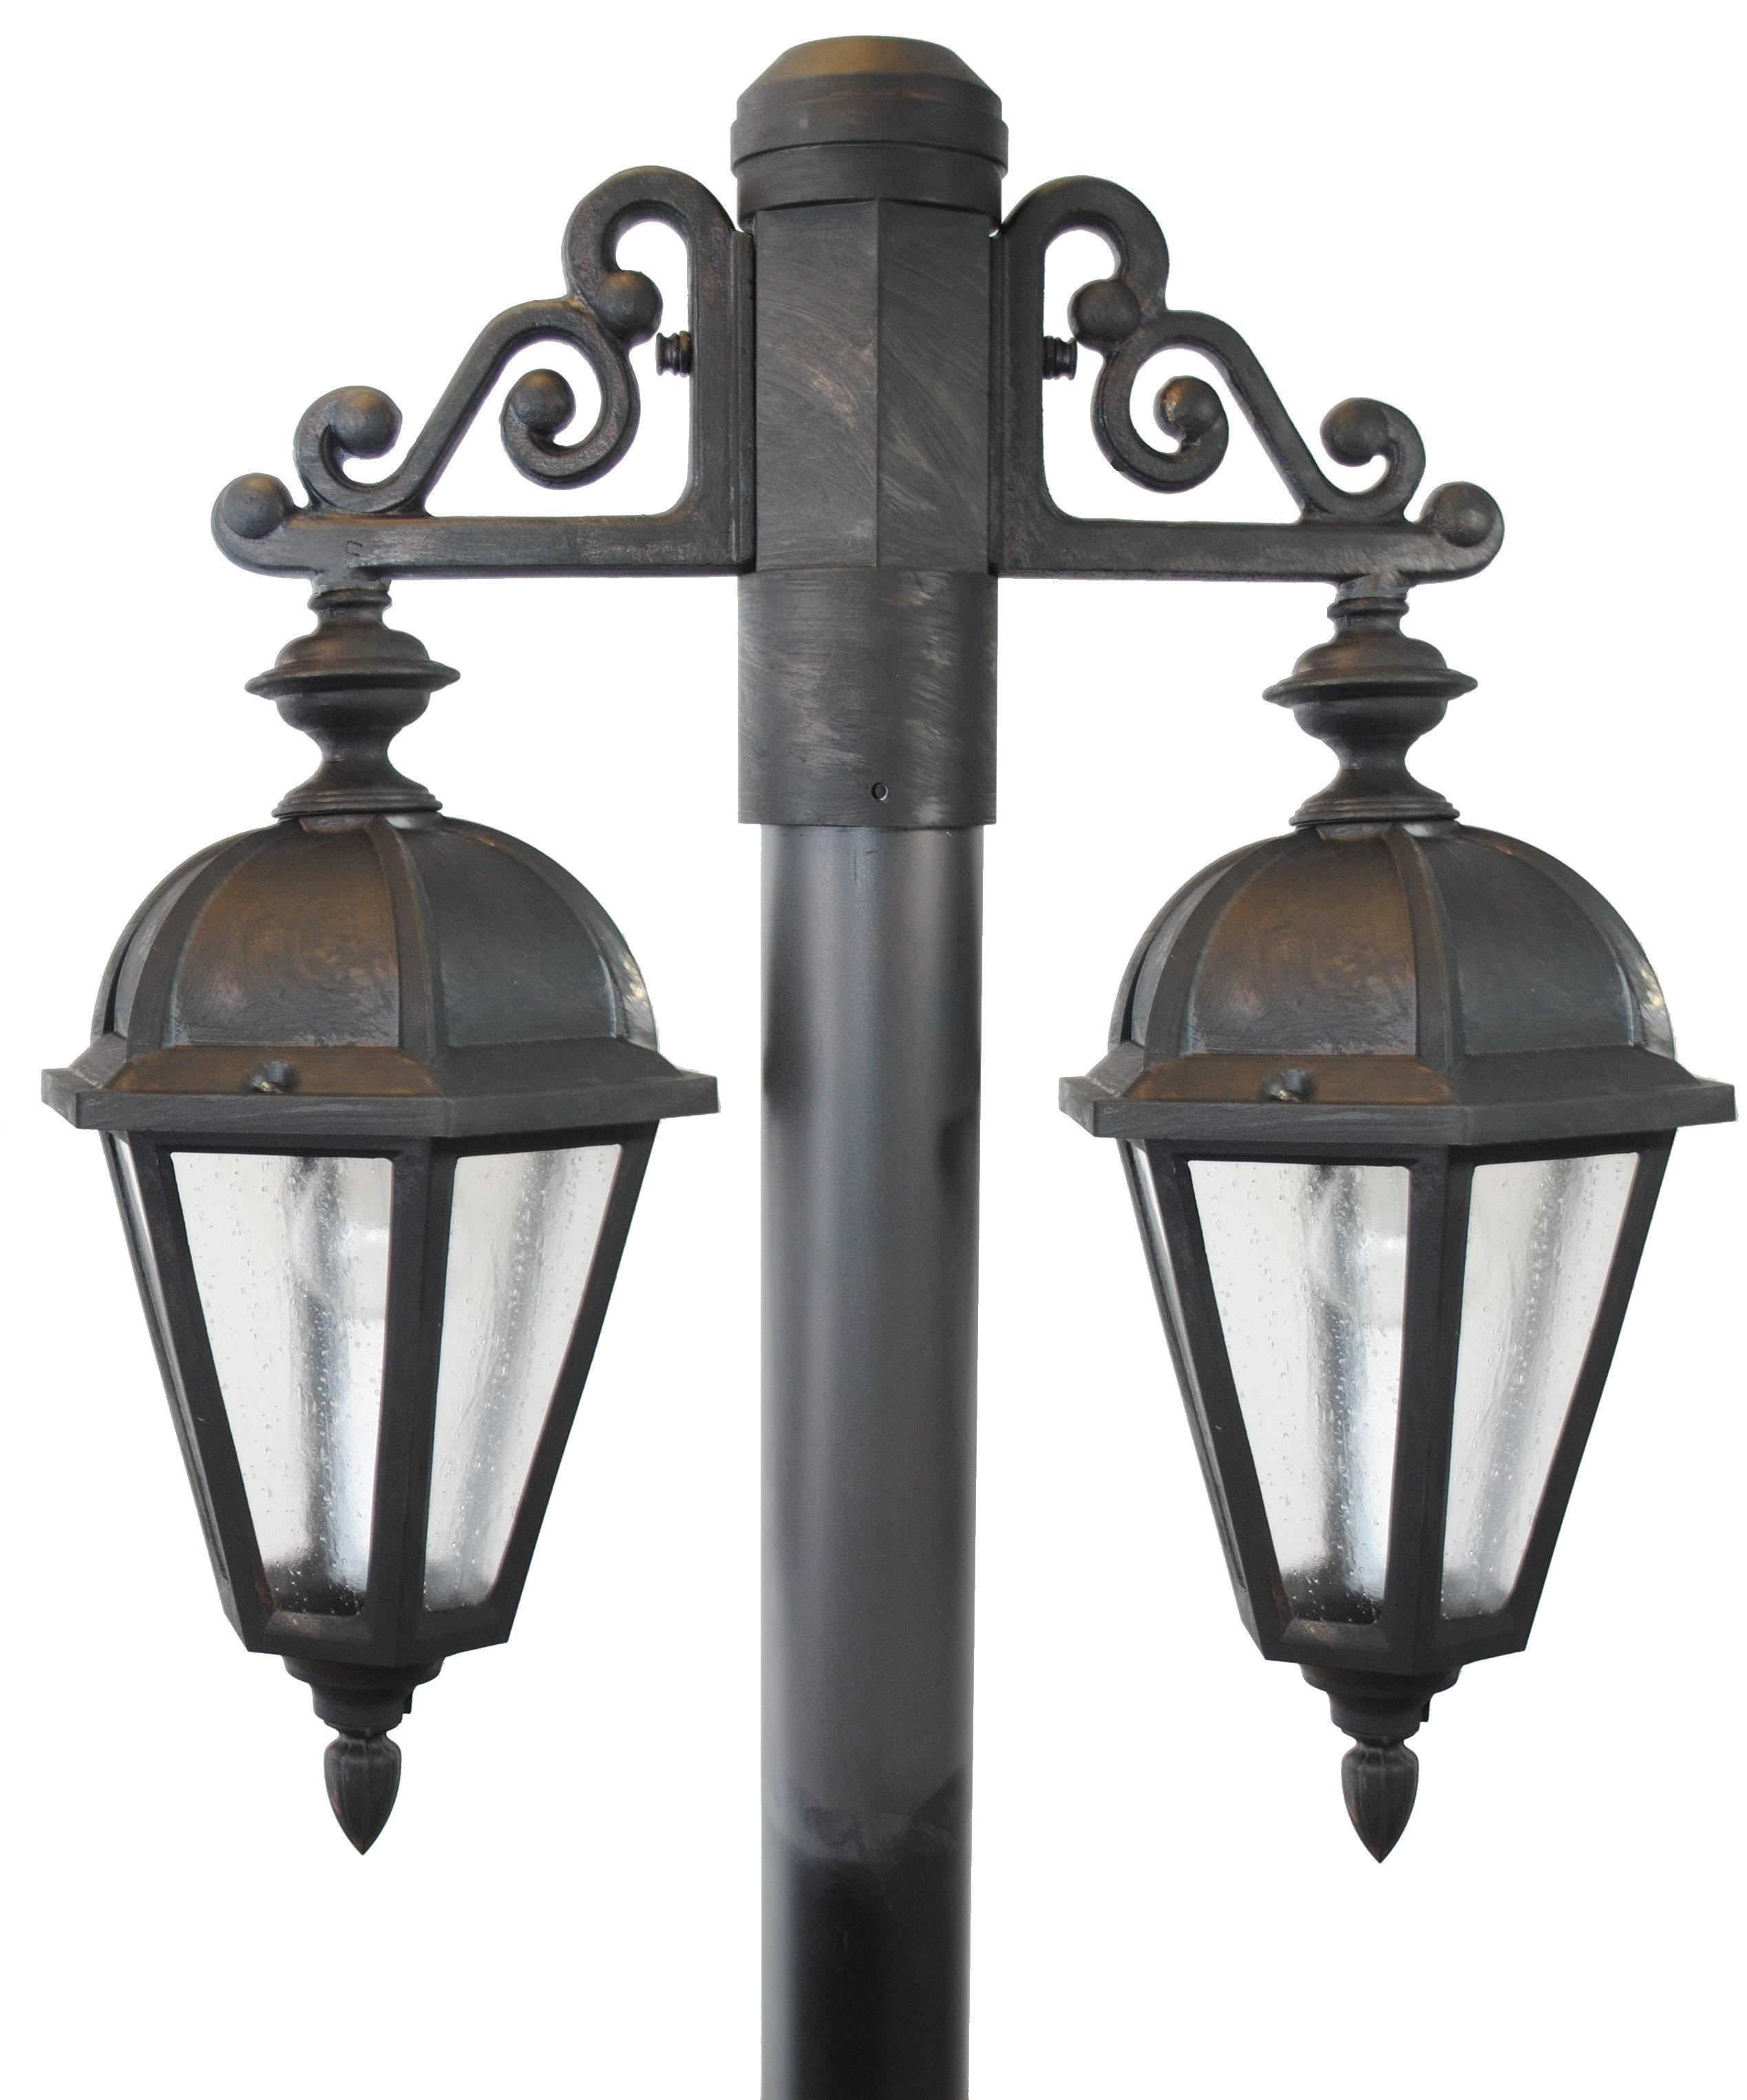 2x24504 Heavy Duty Pole Light